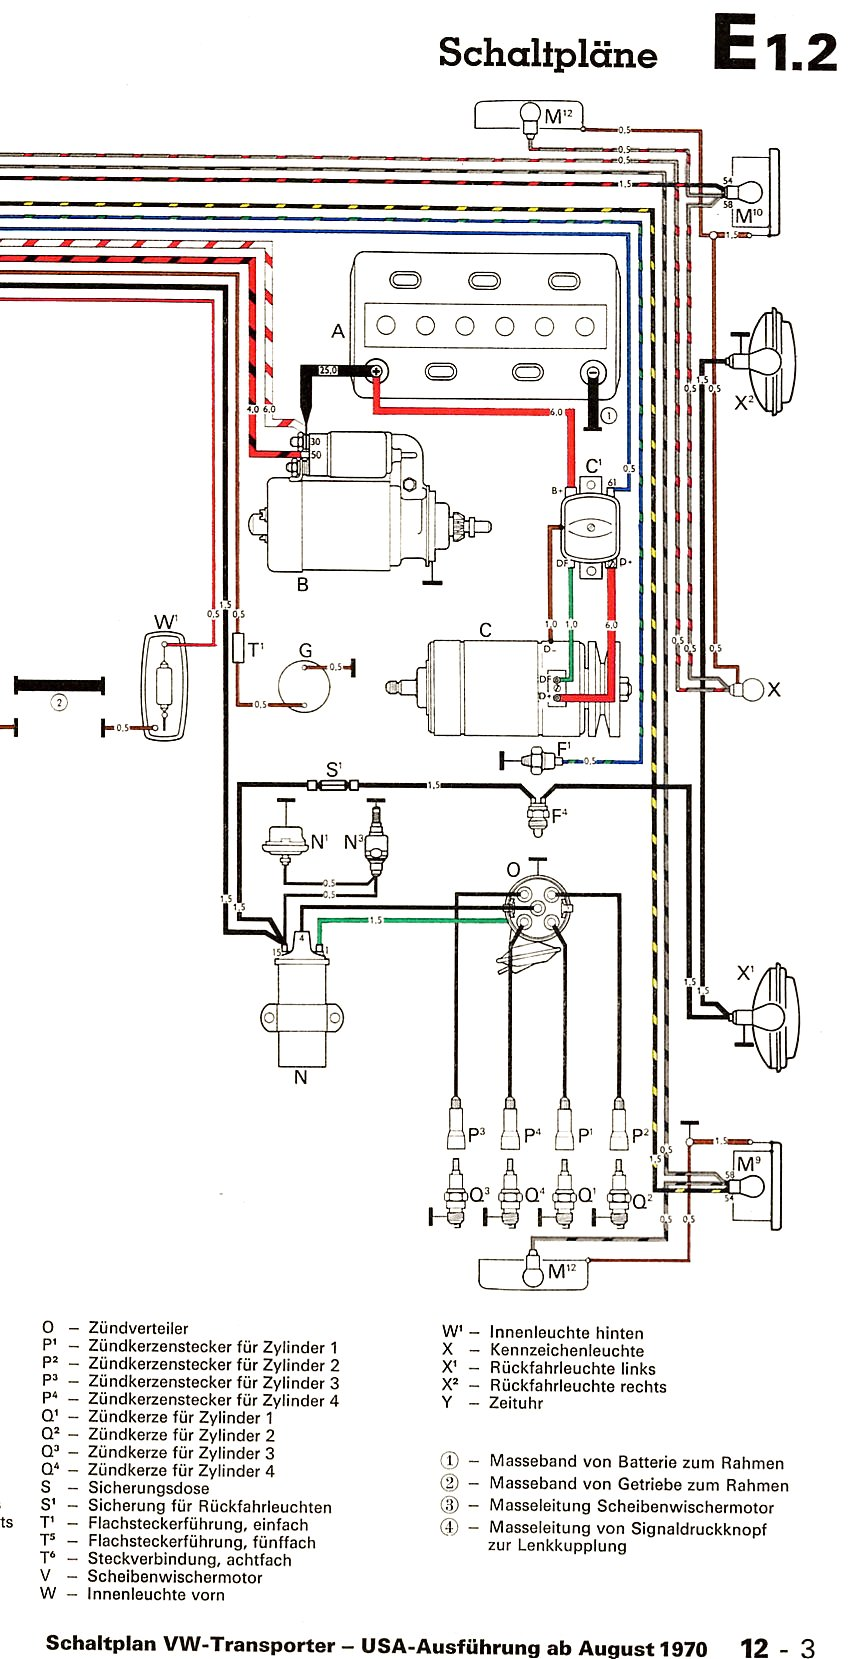 wiring diagram for vw transporter t5  wiring diagram